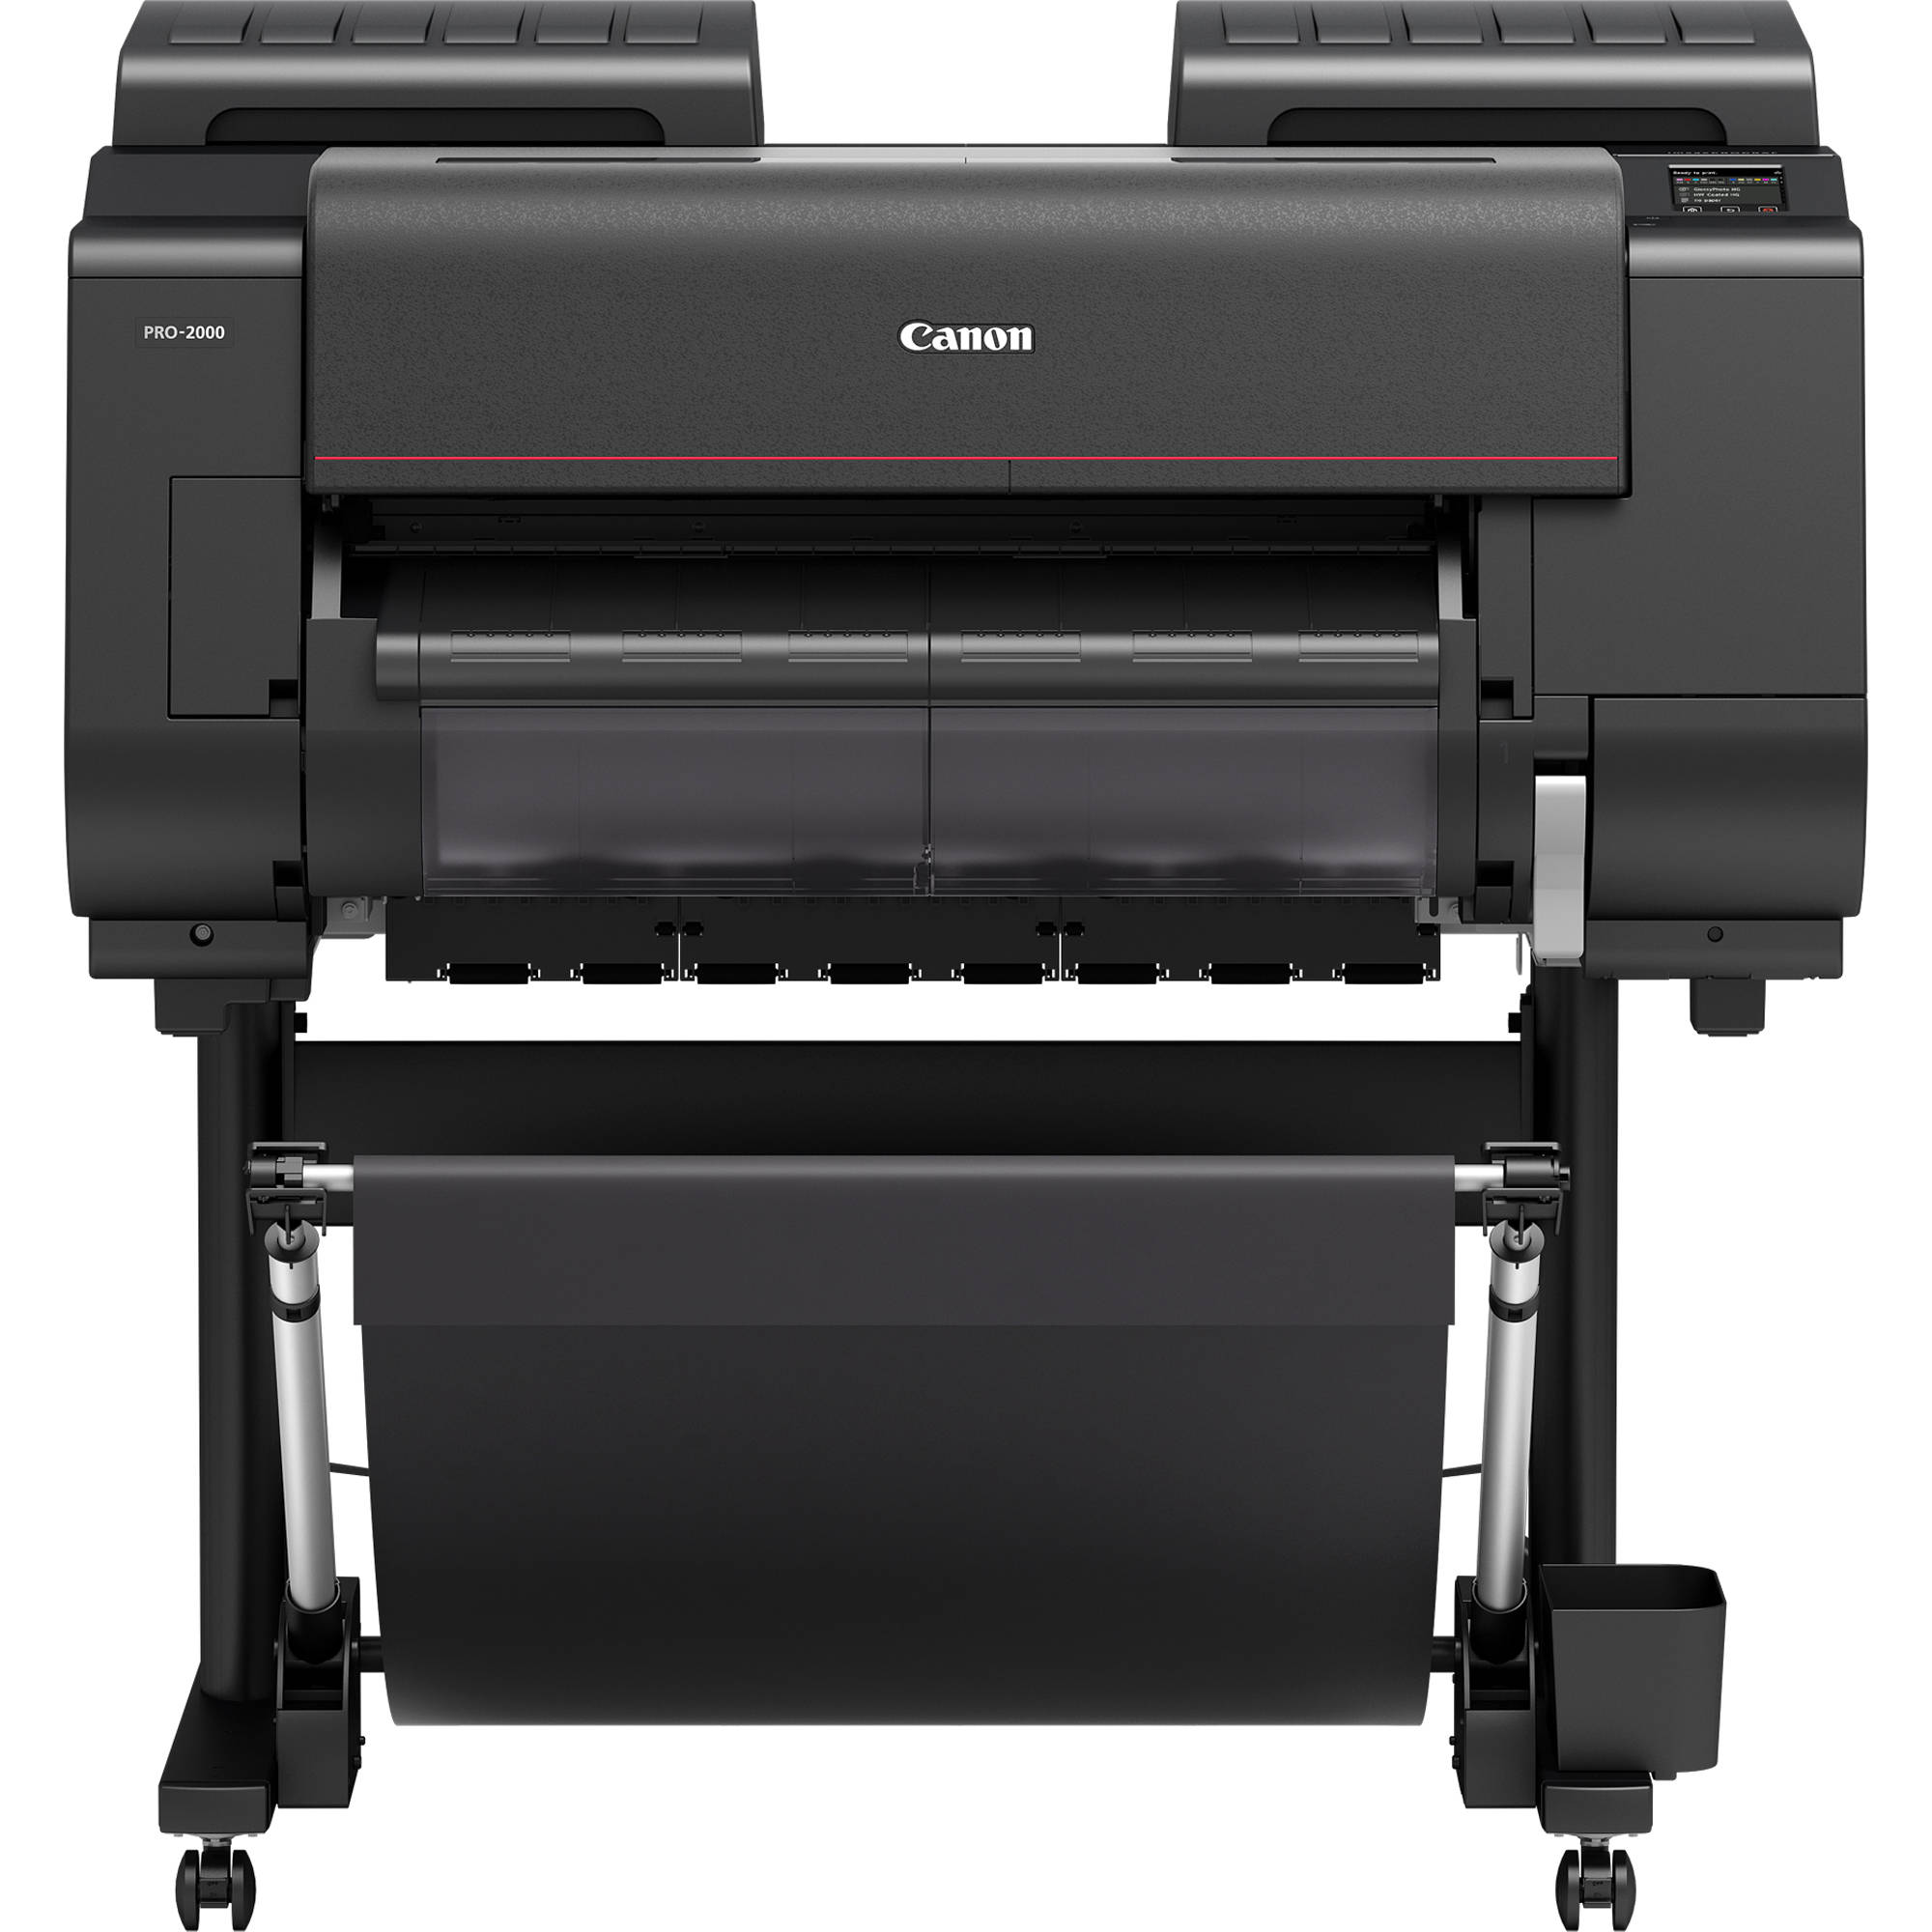 Large format printers bh photo video canon imageprograf pro 2000 24 professional photographic large format inkjet printer reheart Images